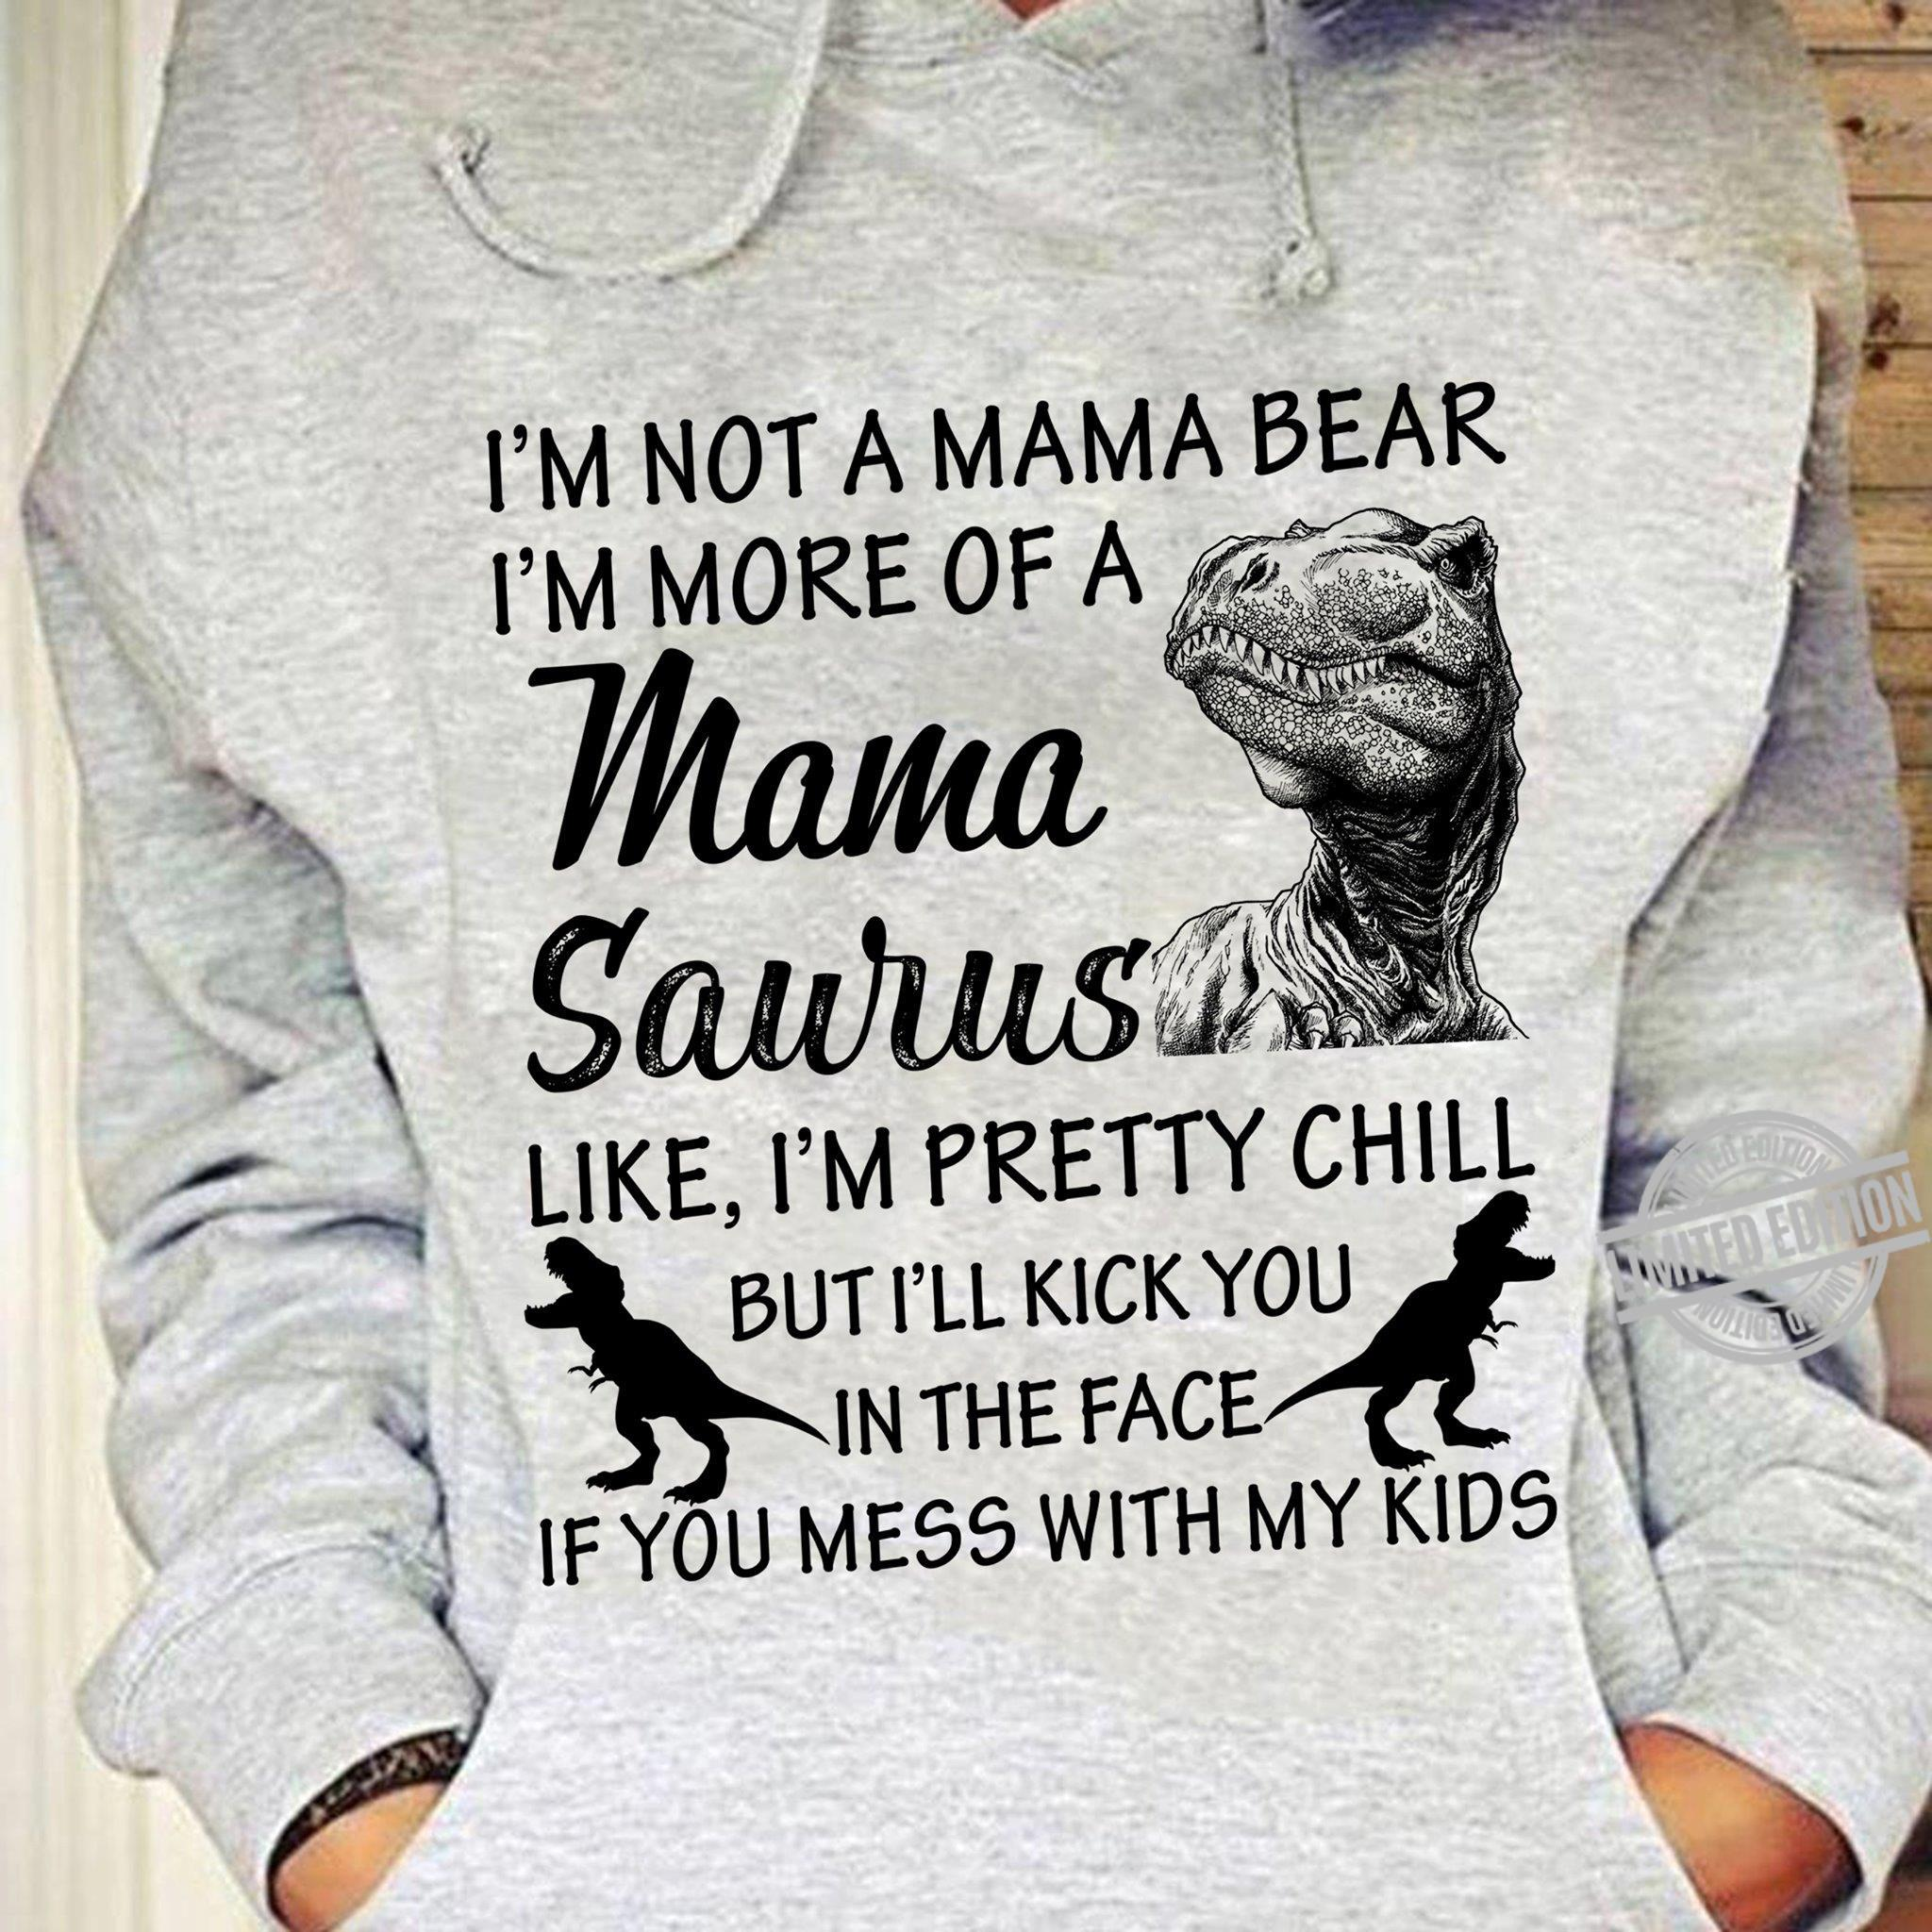 I'm Not A Mama Bear I'm More Of A Mama Saurus Like I'm Pretty Chill But I'll Kick You In The Face In The Face If You Mess With My Kids Shirt